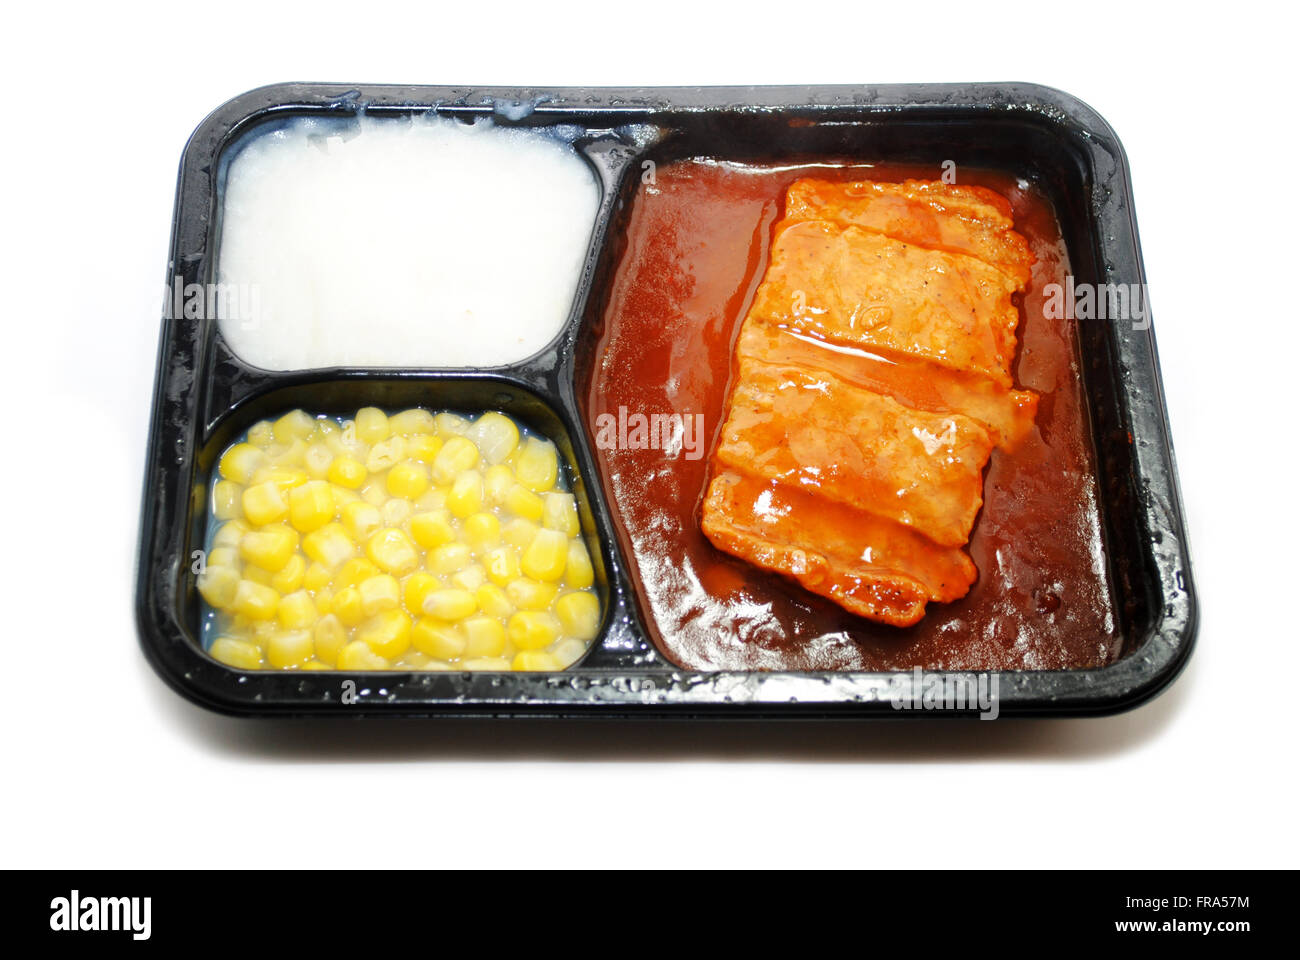 BBQ Pork TV Dinner with Corn and Potatoes - Stock Image